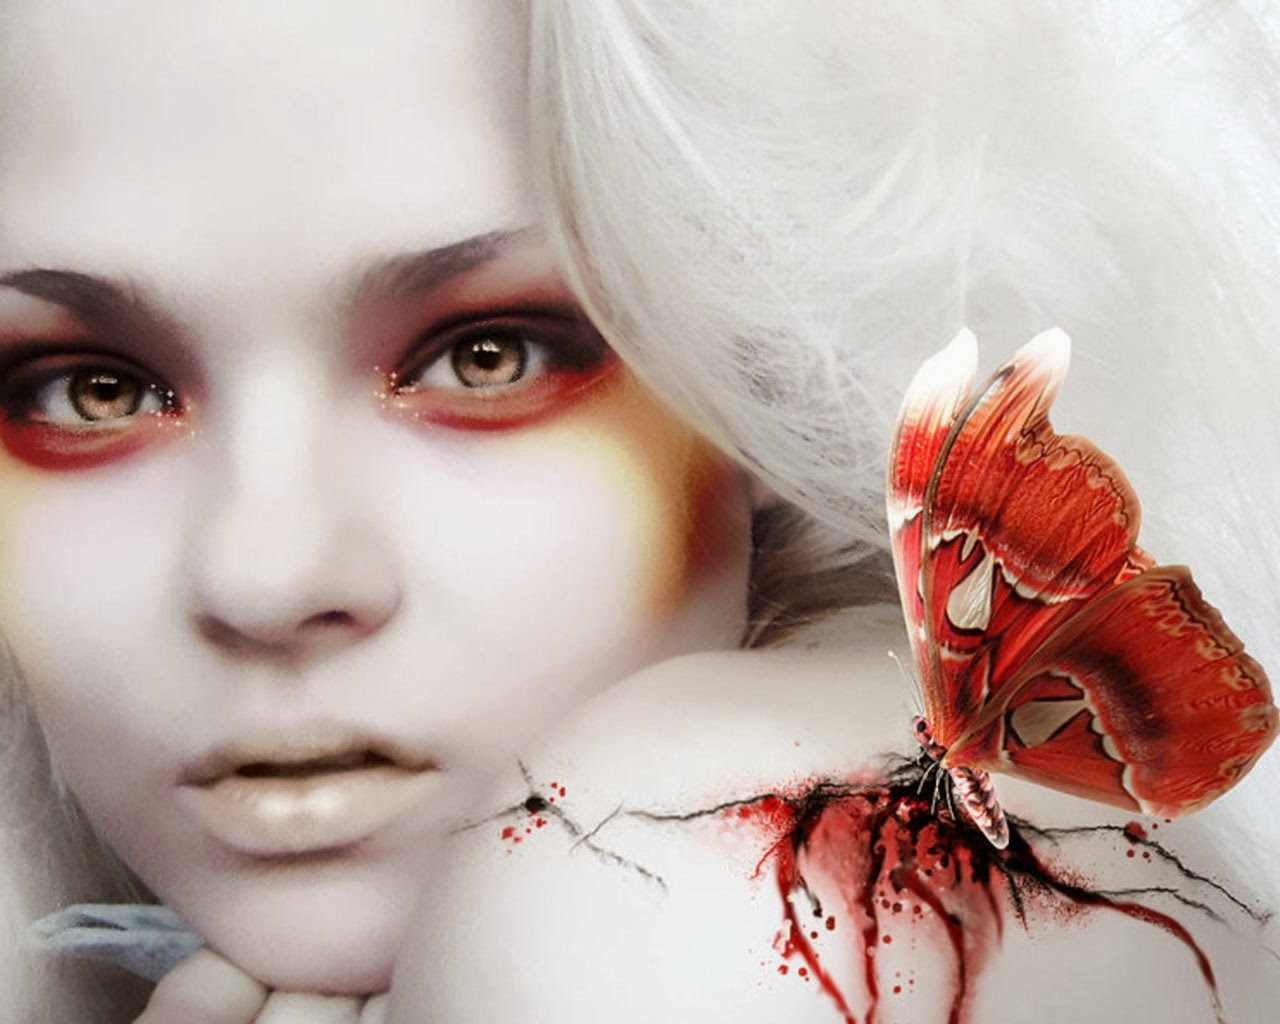 Cool Vampire Wallpapers ~ HD Wallpapers   Funny Videos   Hot Girls Photos   Amazing Wallpapers ...